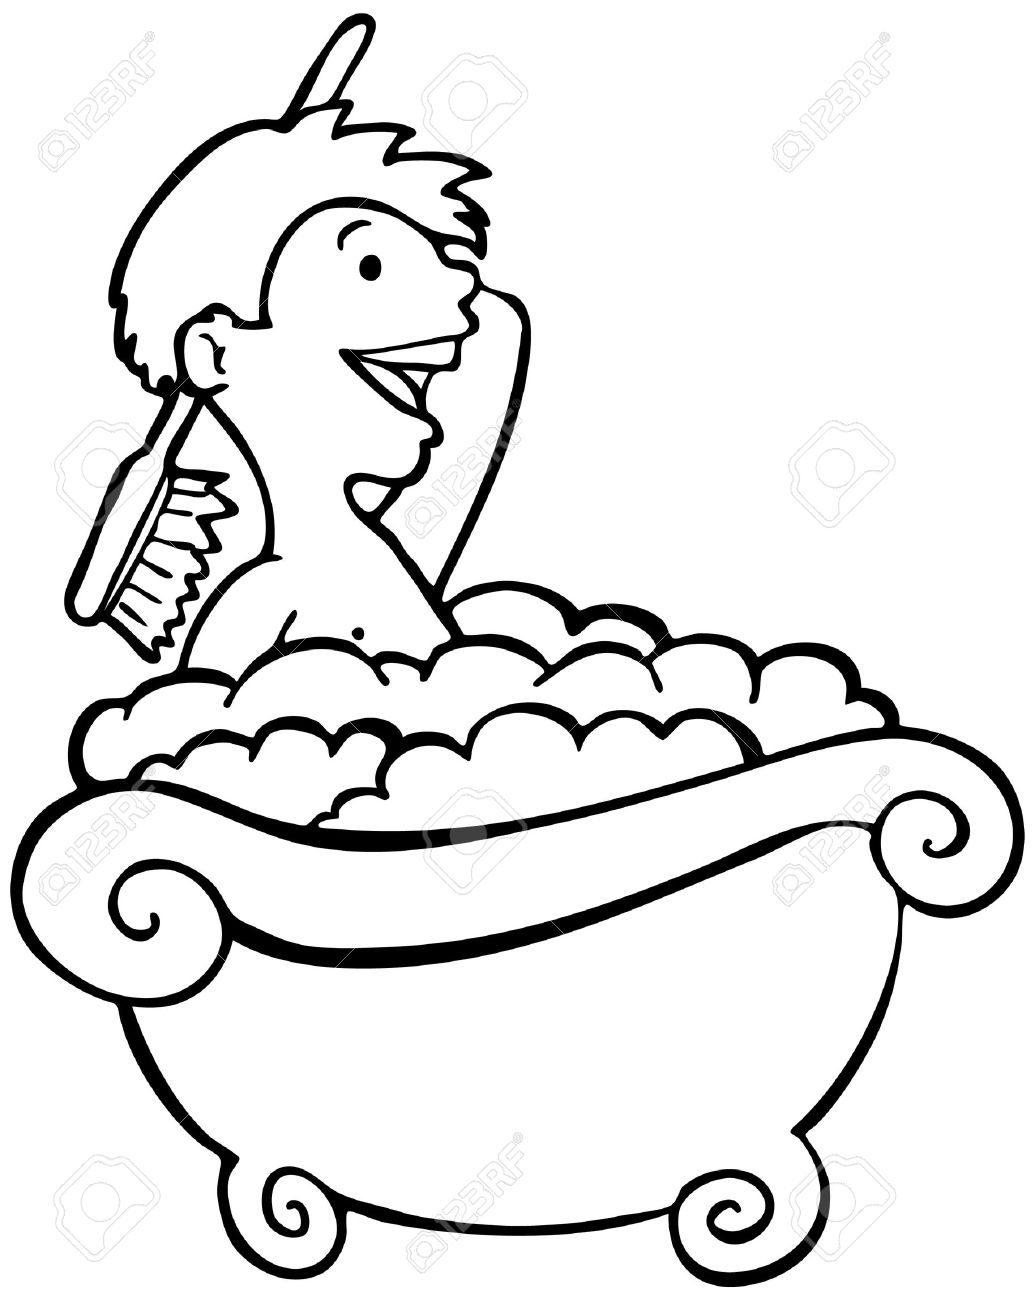 Kids Shower Clipart Black And White.